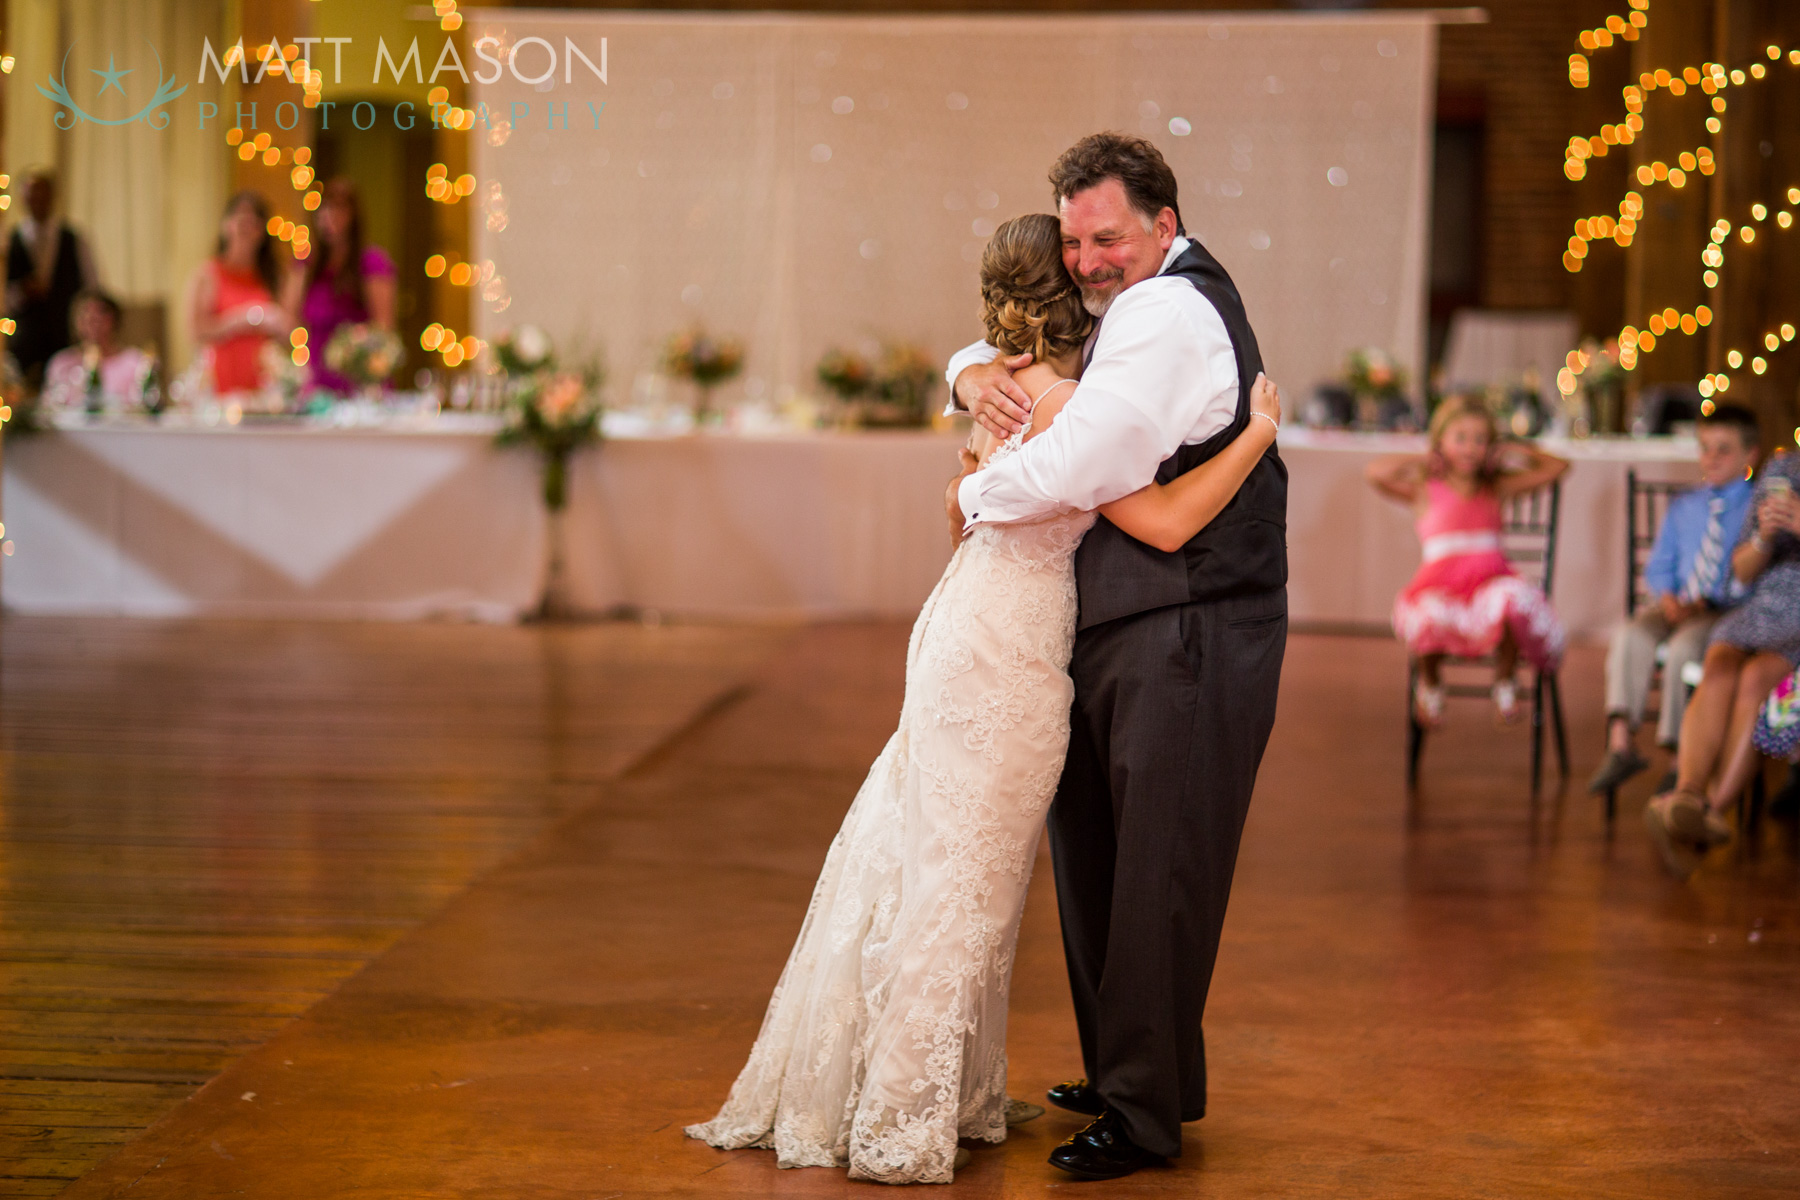 Matt-Mason-Photography-Father-Daughter-MattMasonPhotography-9.jpg